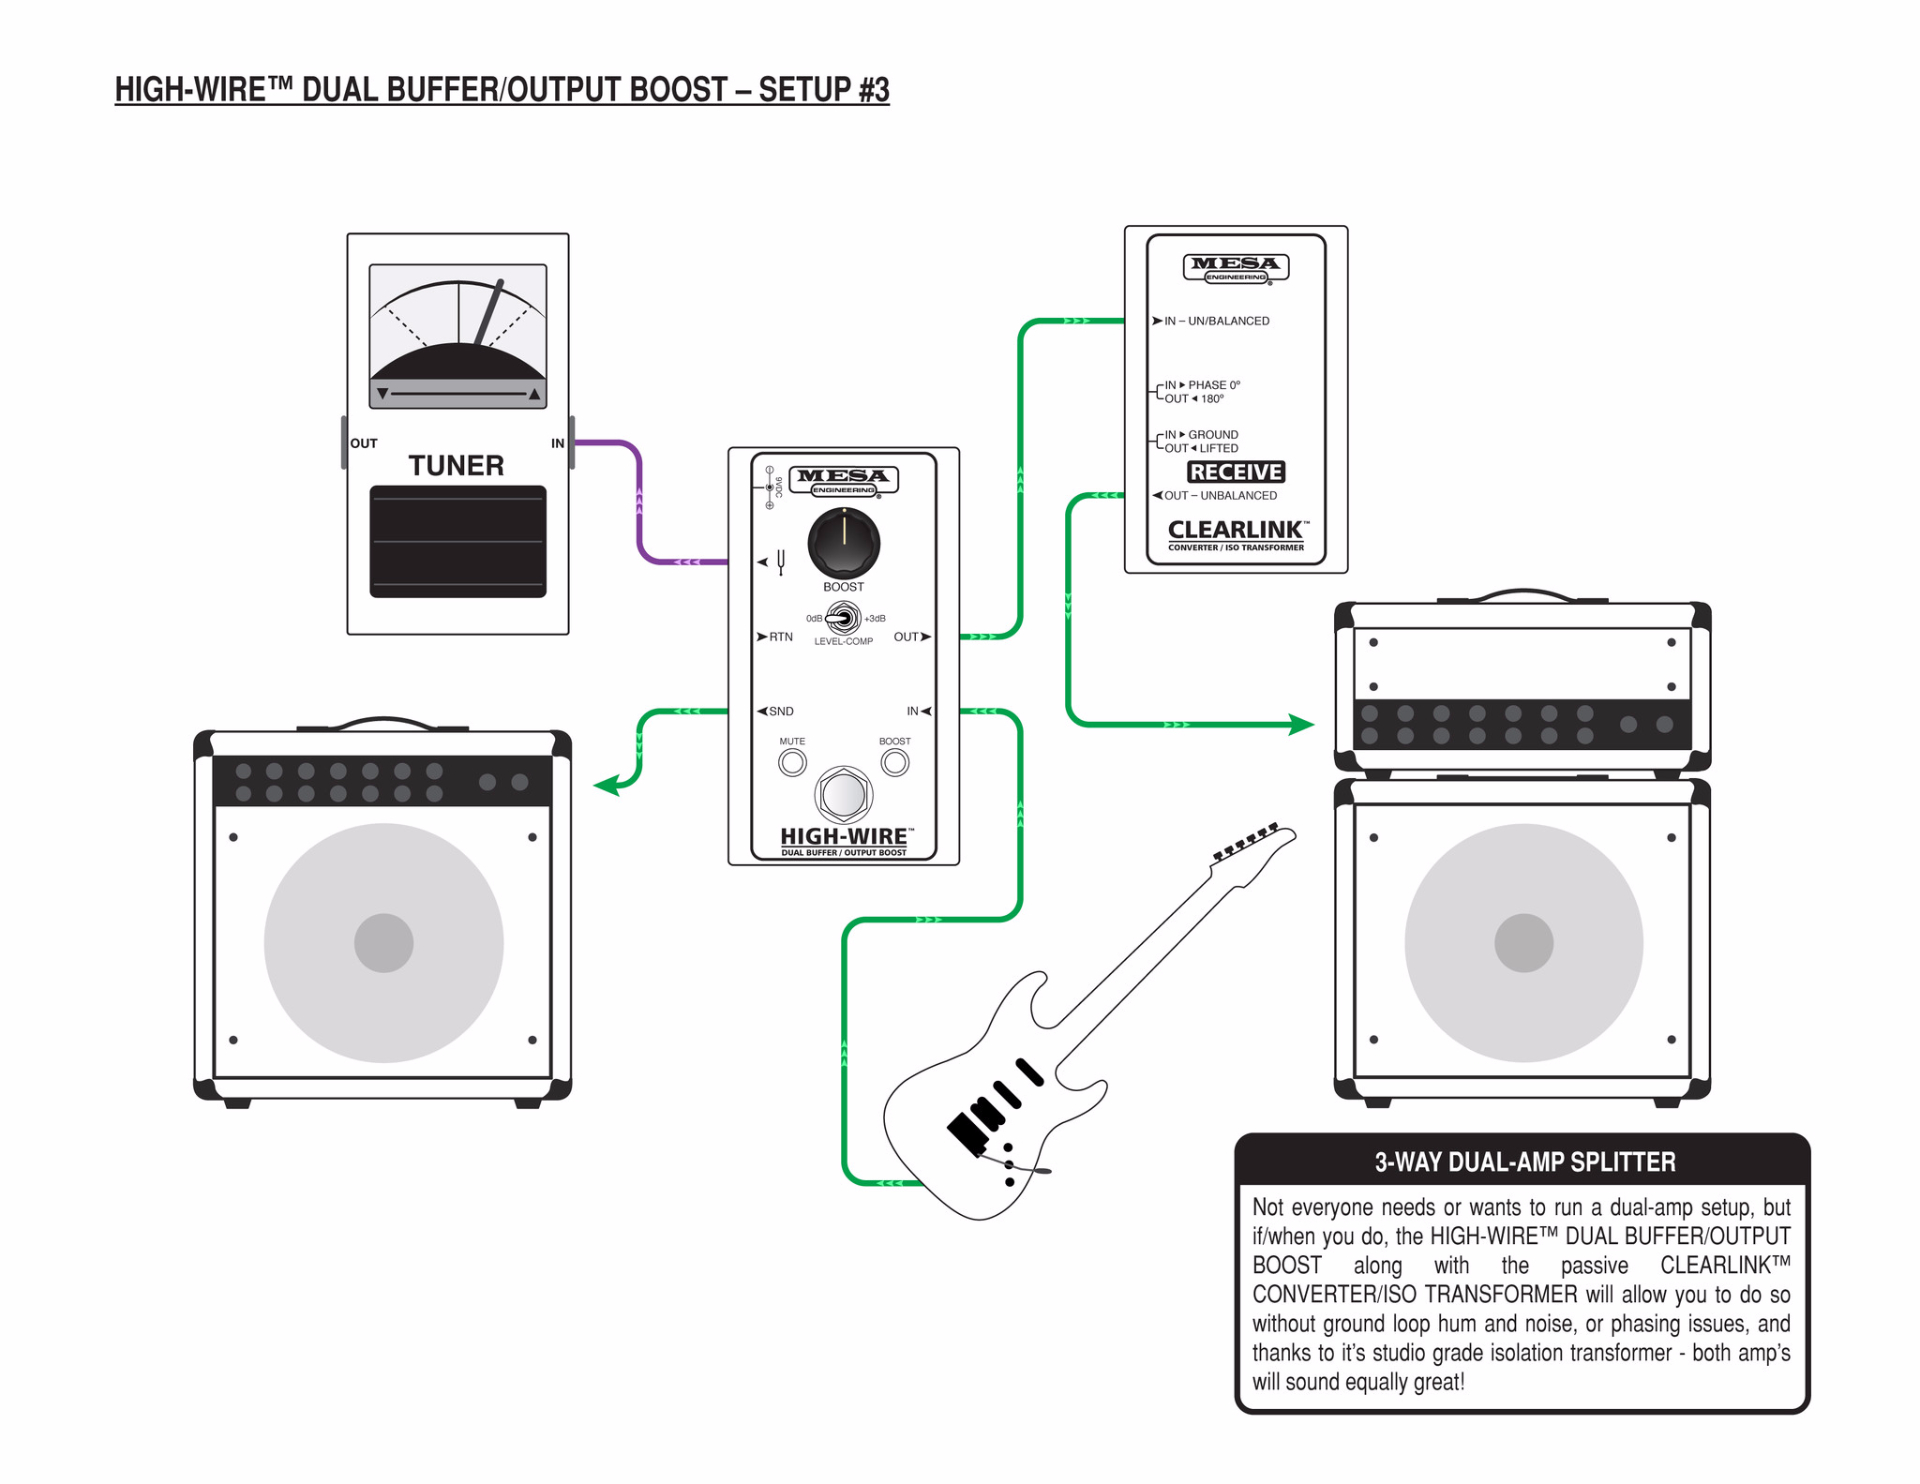 Can I Use The High Wire Dual Buffer Output Boost As A